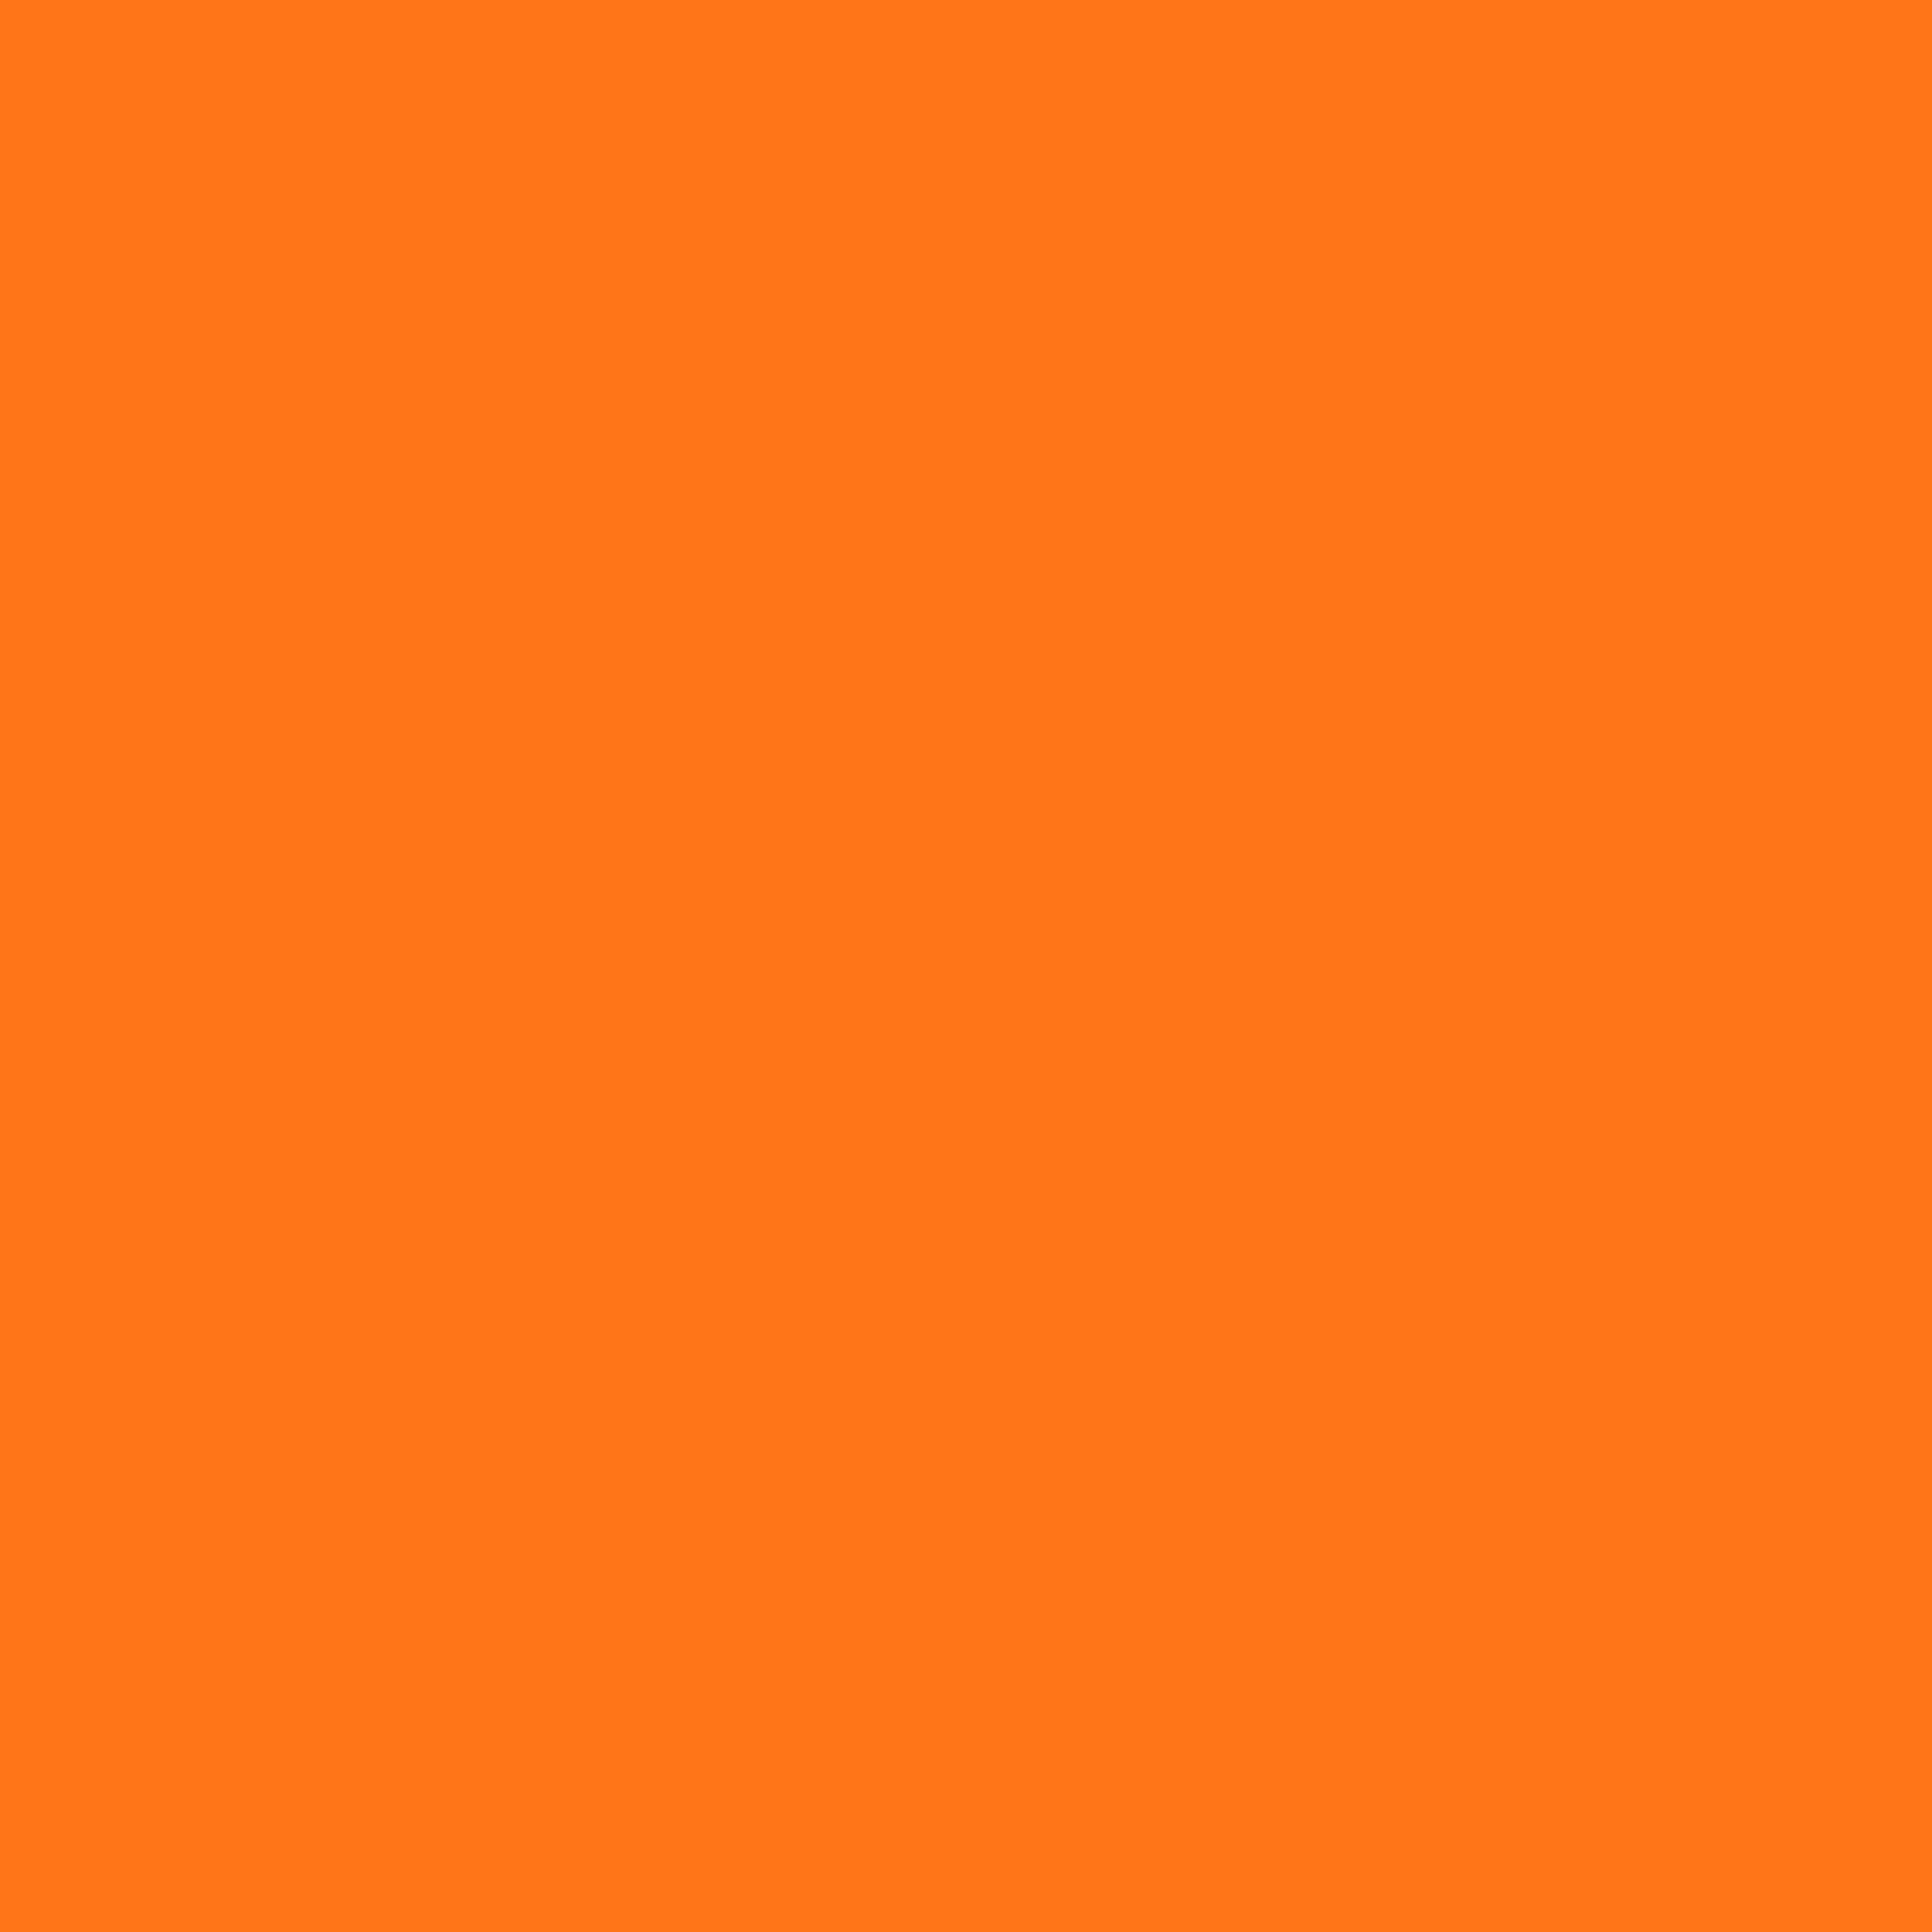 2732x2732 Pumpkin Solid Color Background